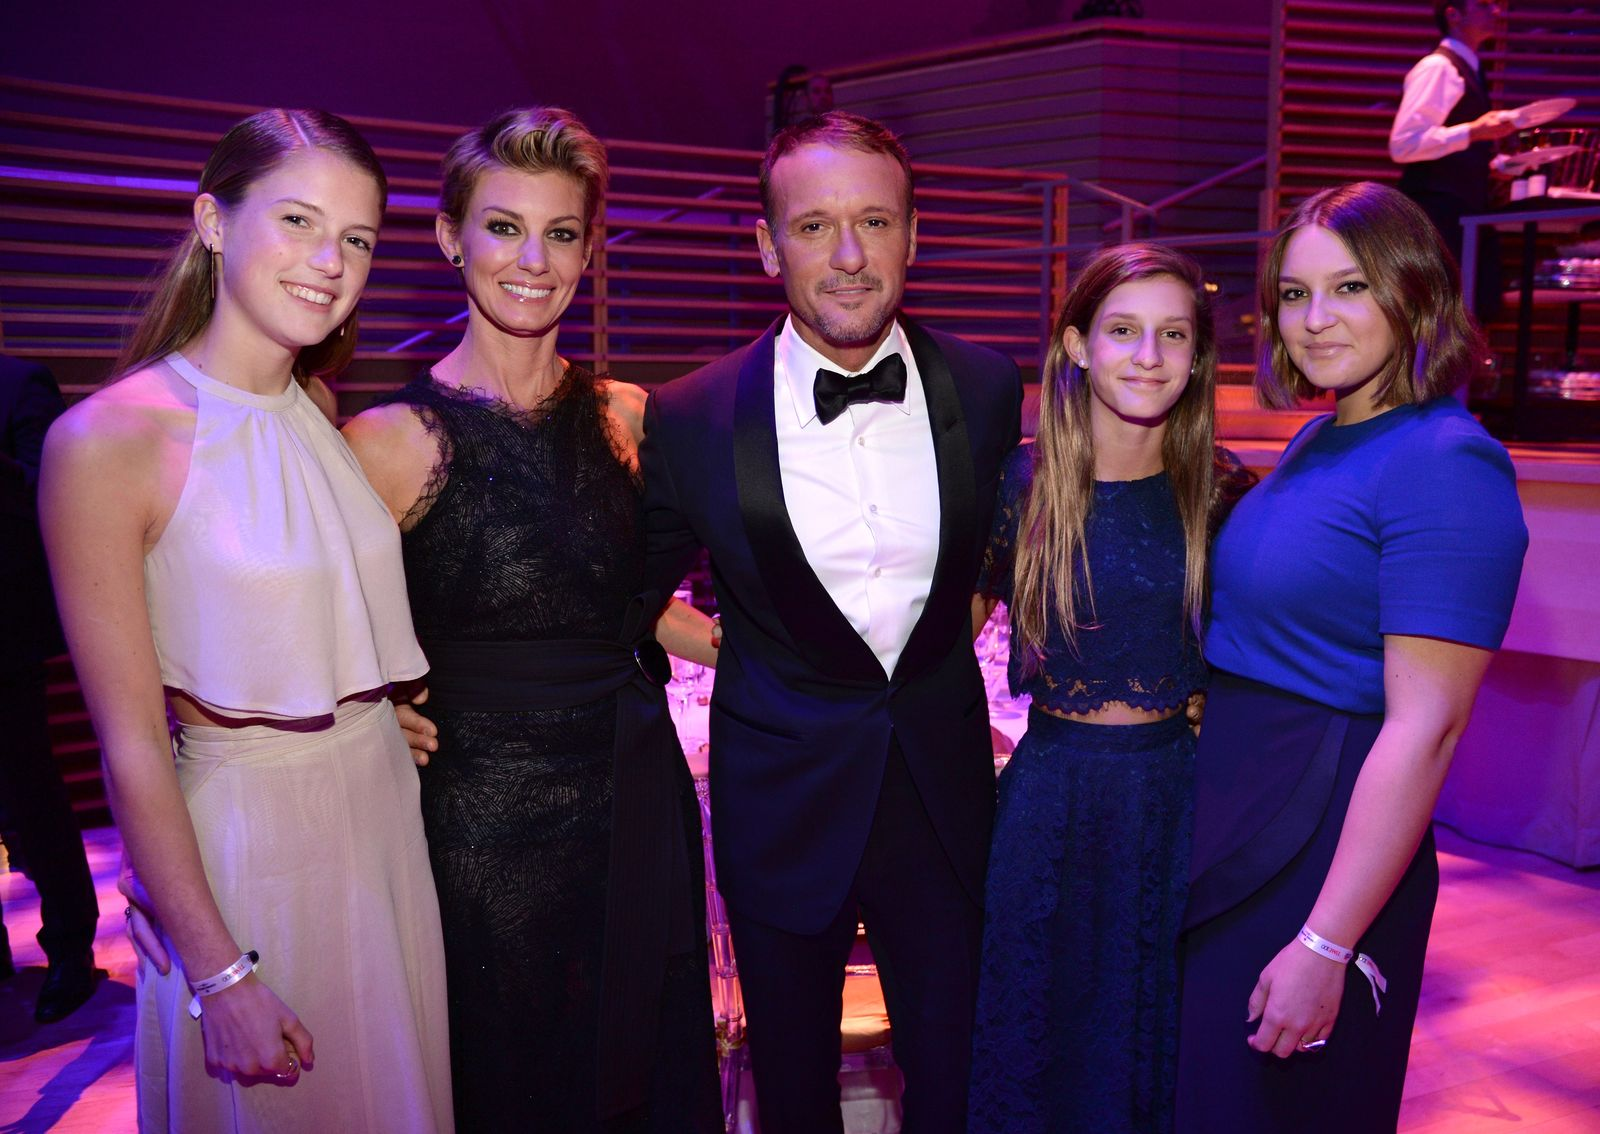 Gracie McGraw, Faith Hill, Tim McGraw, Audrey McGraw and Maggie McGraw attend TIME 100 Gala on April 21, 2015. | Source: Getty Images